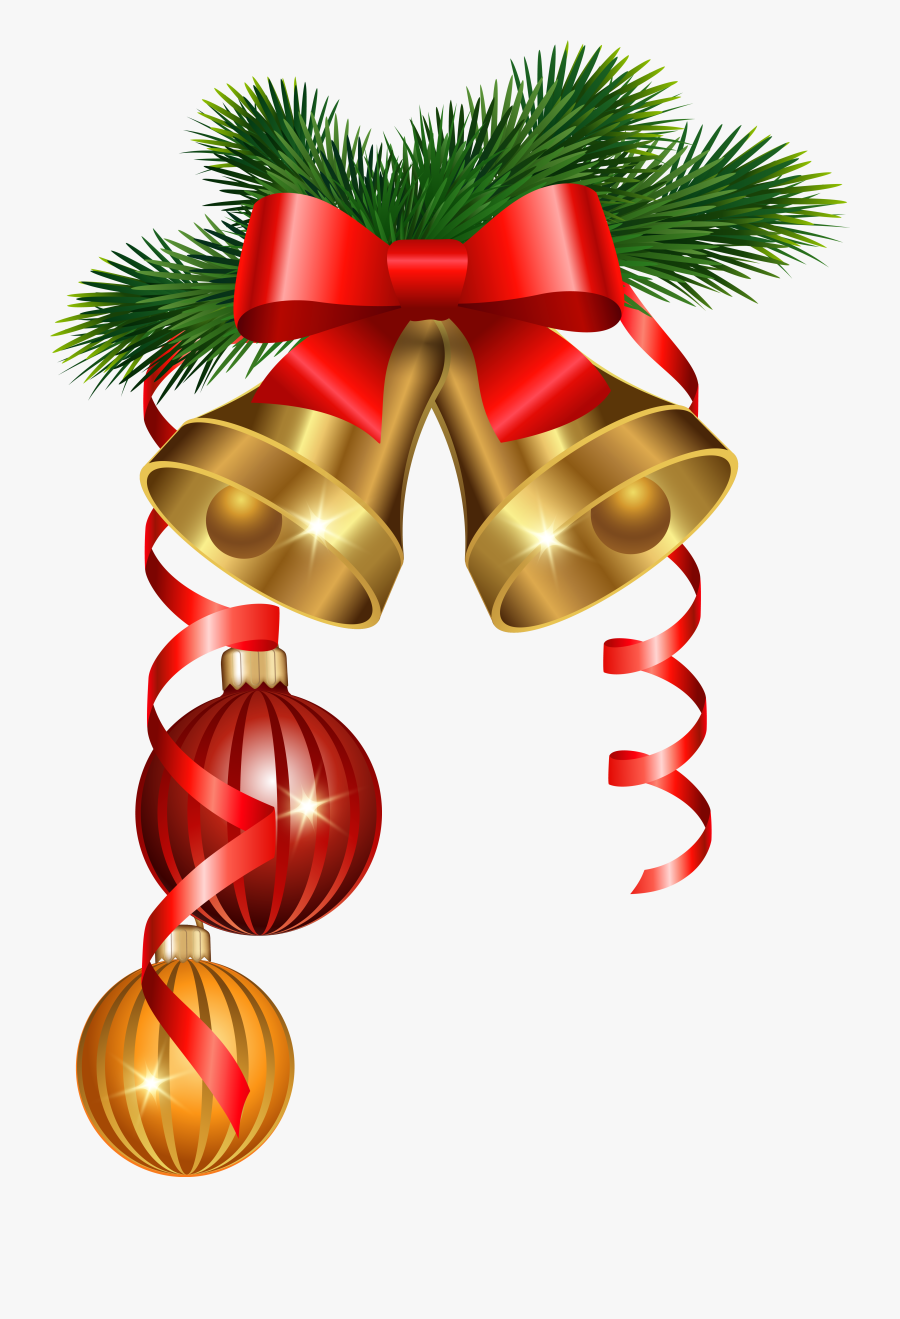 And Golden Tree Decoration Ornaments Christmas Bells - Christmas Background Bells Png, Transparent Clipart